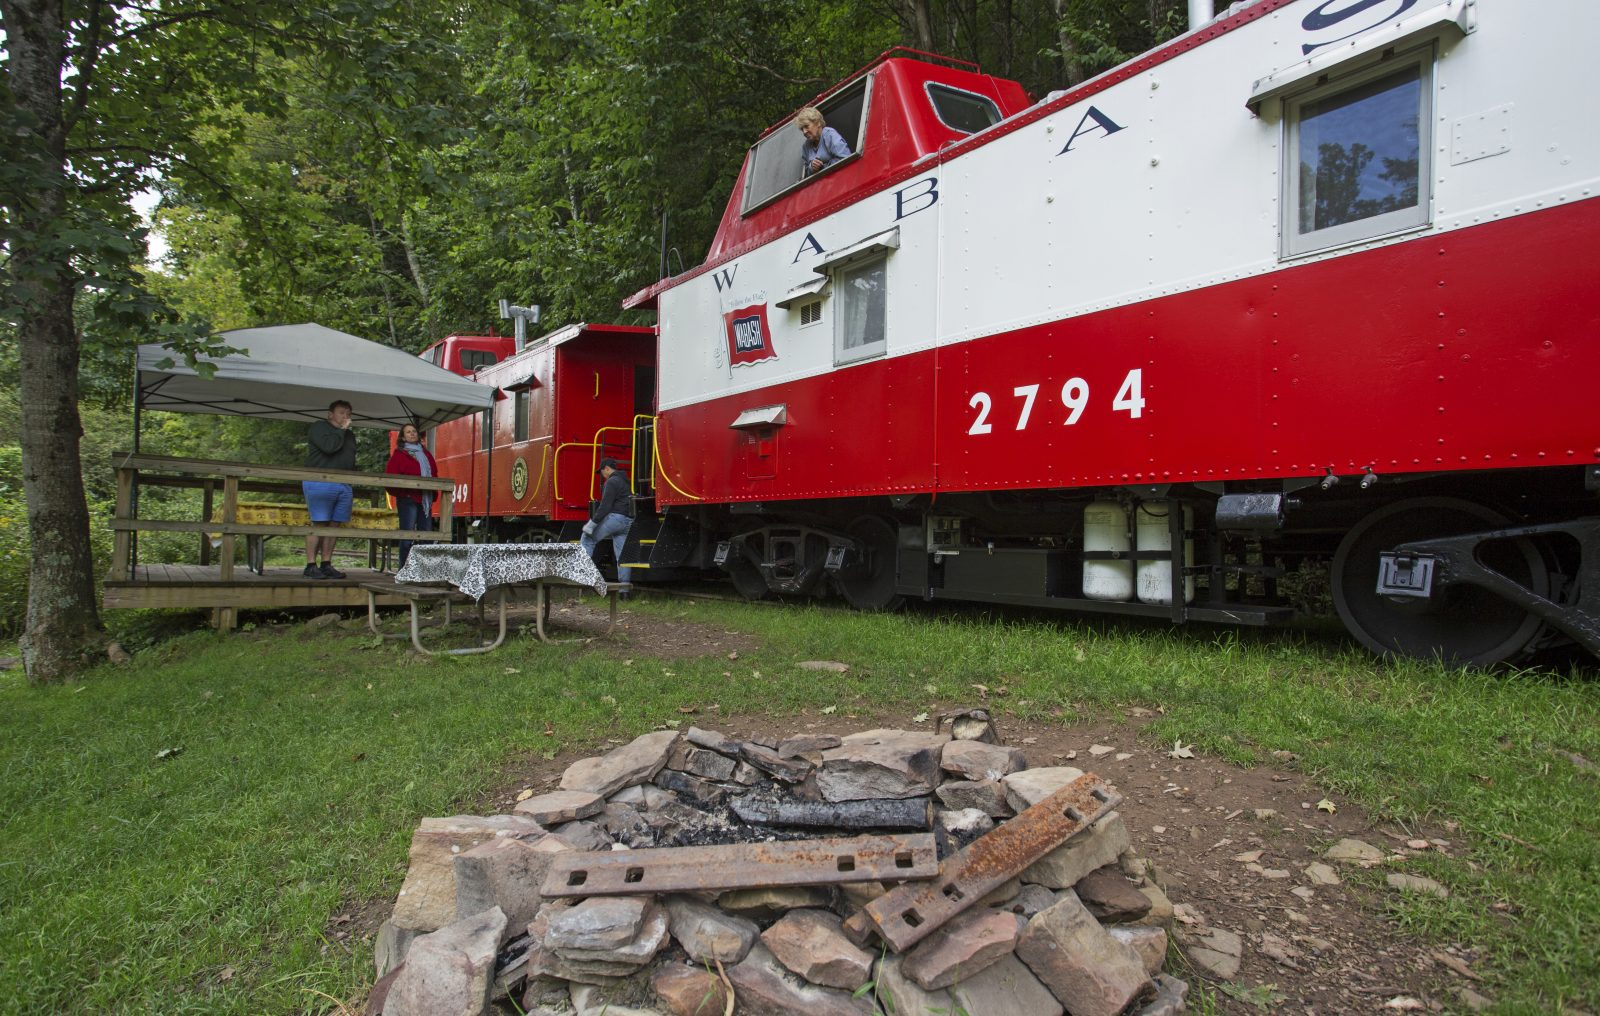 castaway caboose overnights mountain rail wv. Black Bedroom Furniture Sets. Home Design Ideas